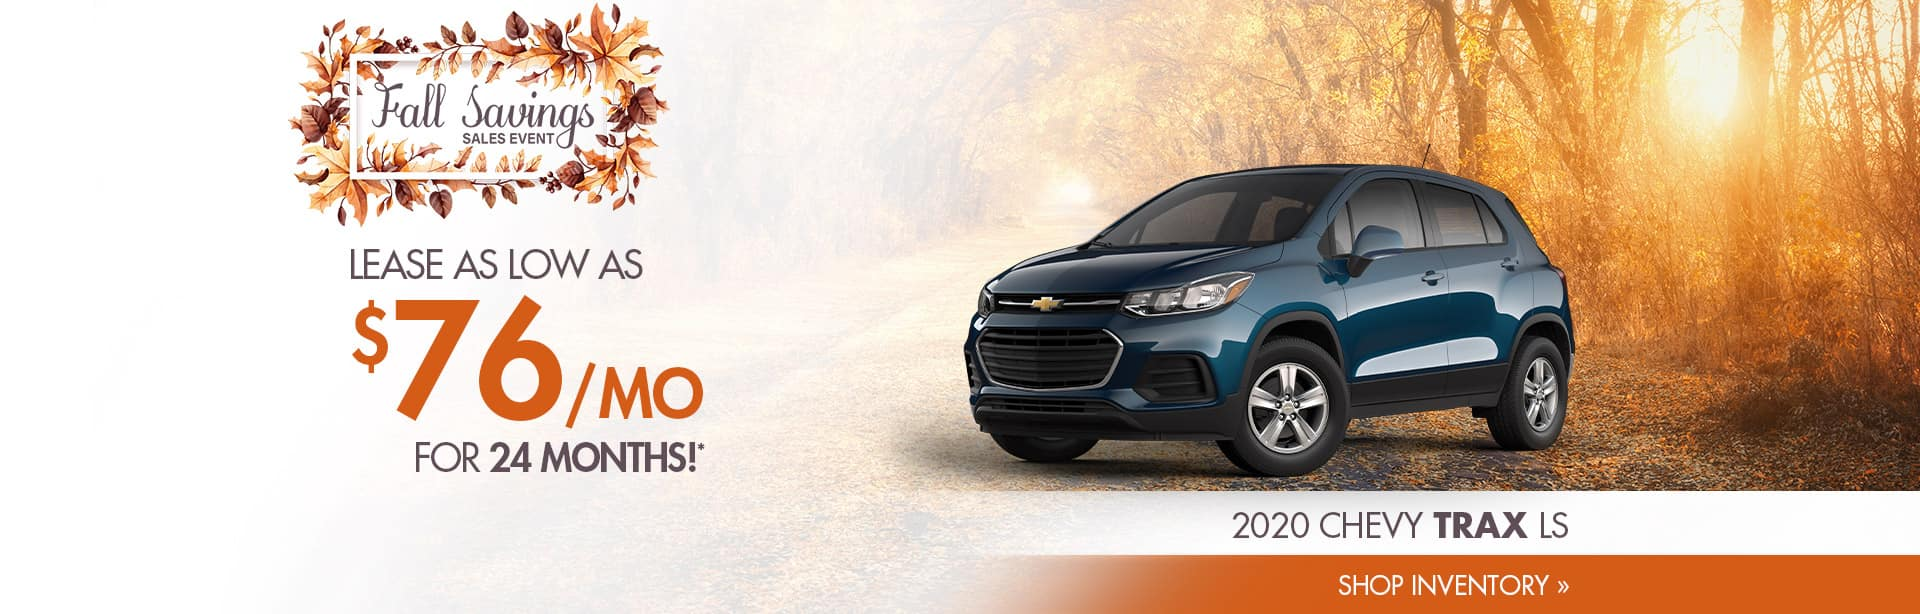 Lease a New Chevrolet Trax near Clinton, Indiana